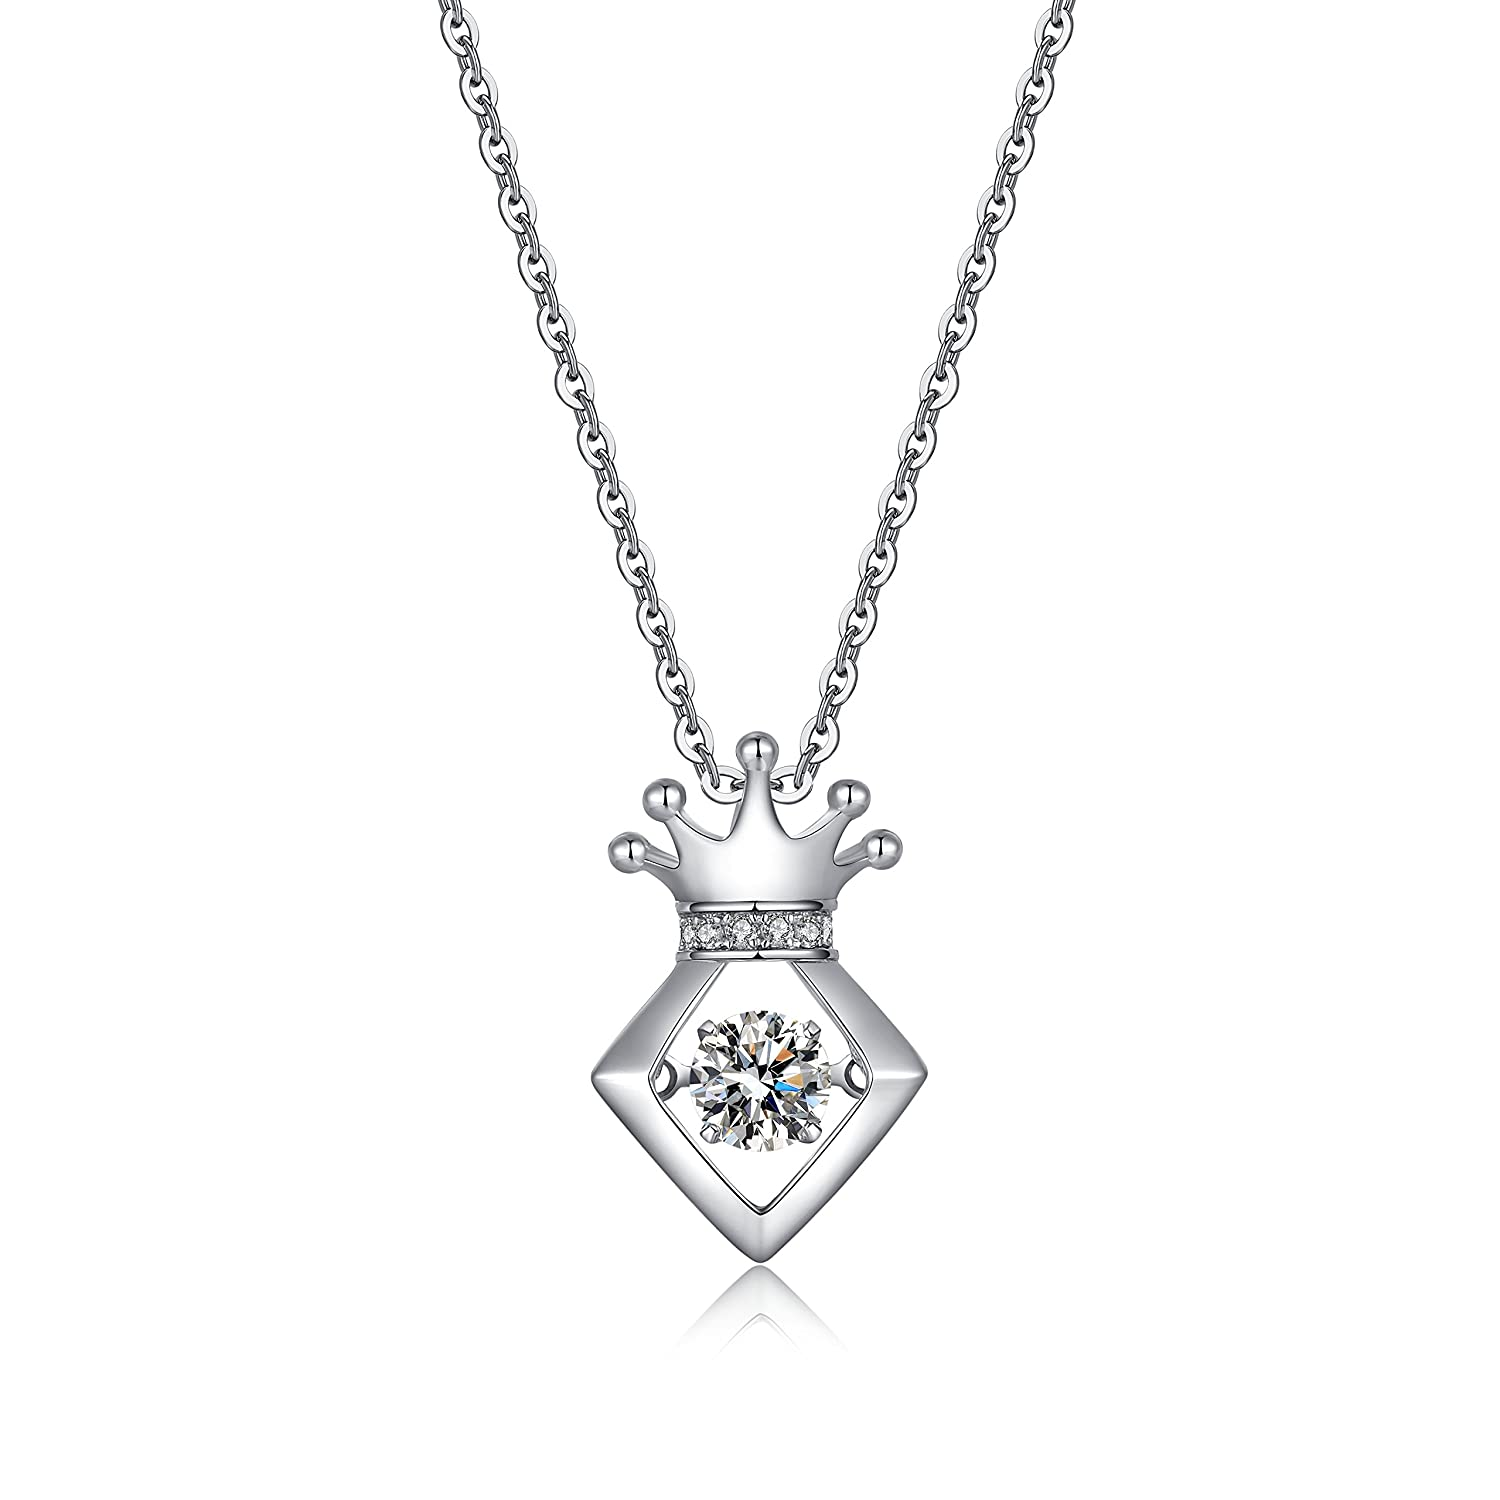 2017 925 sterling silve Pendant&Necklace with Dancing Diamond for Women Best Gift